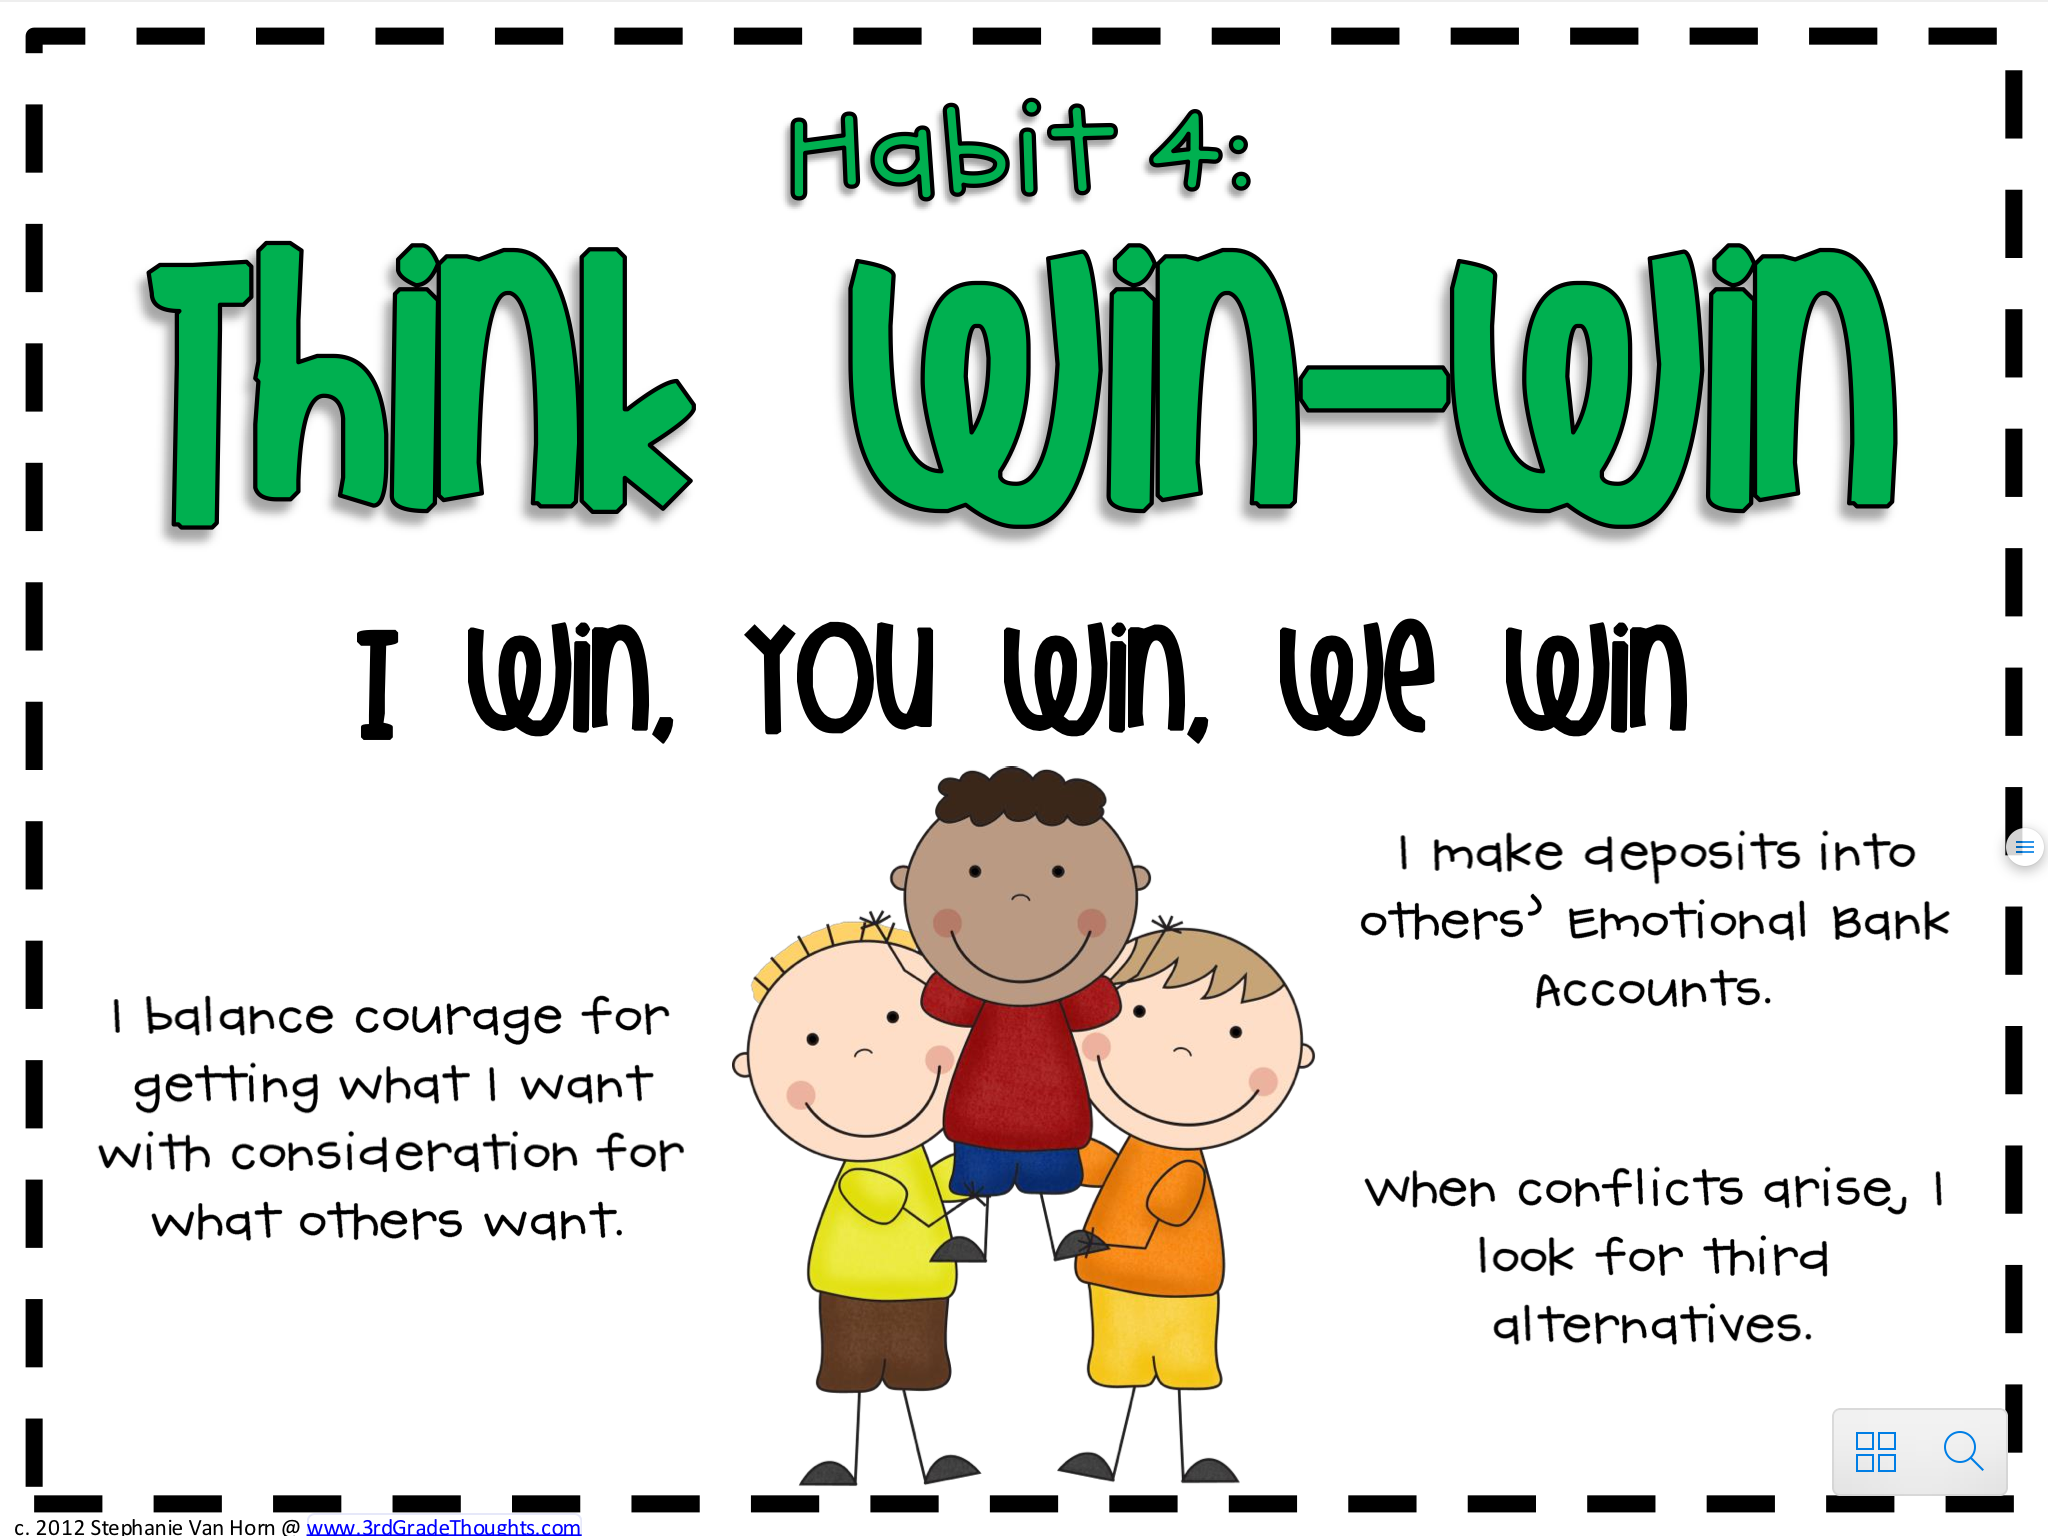 Our focus this month is on Habit #4